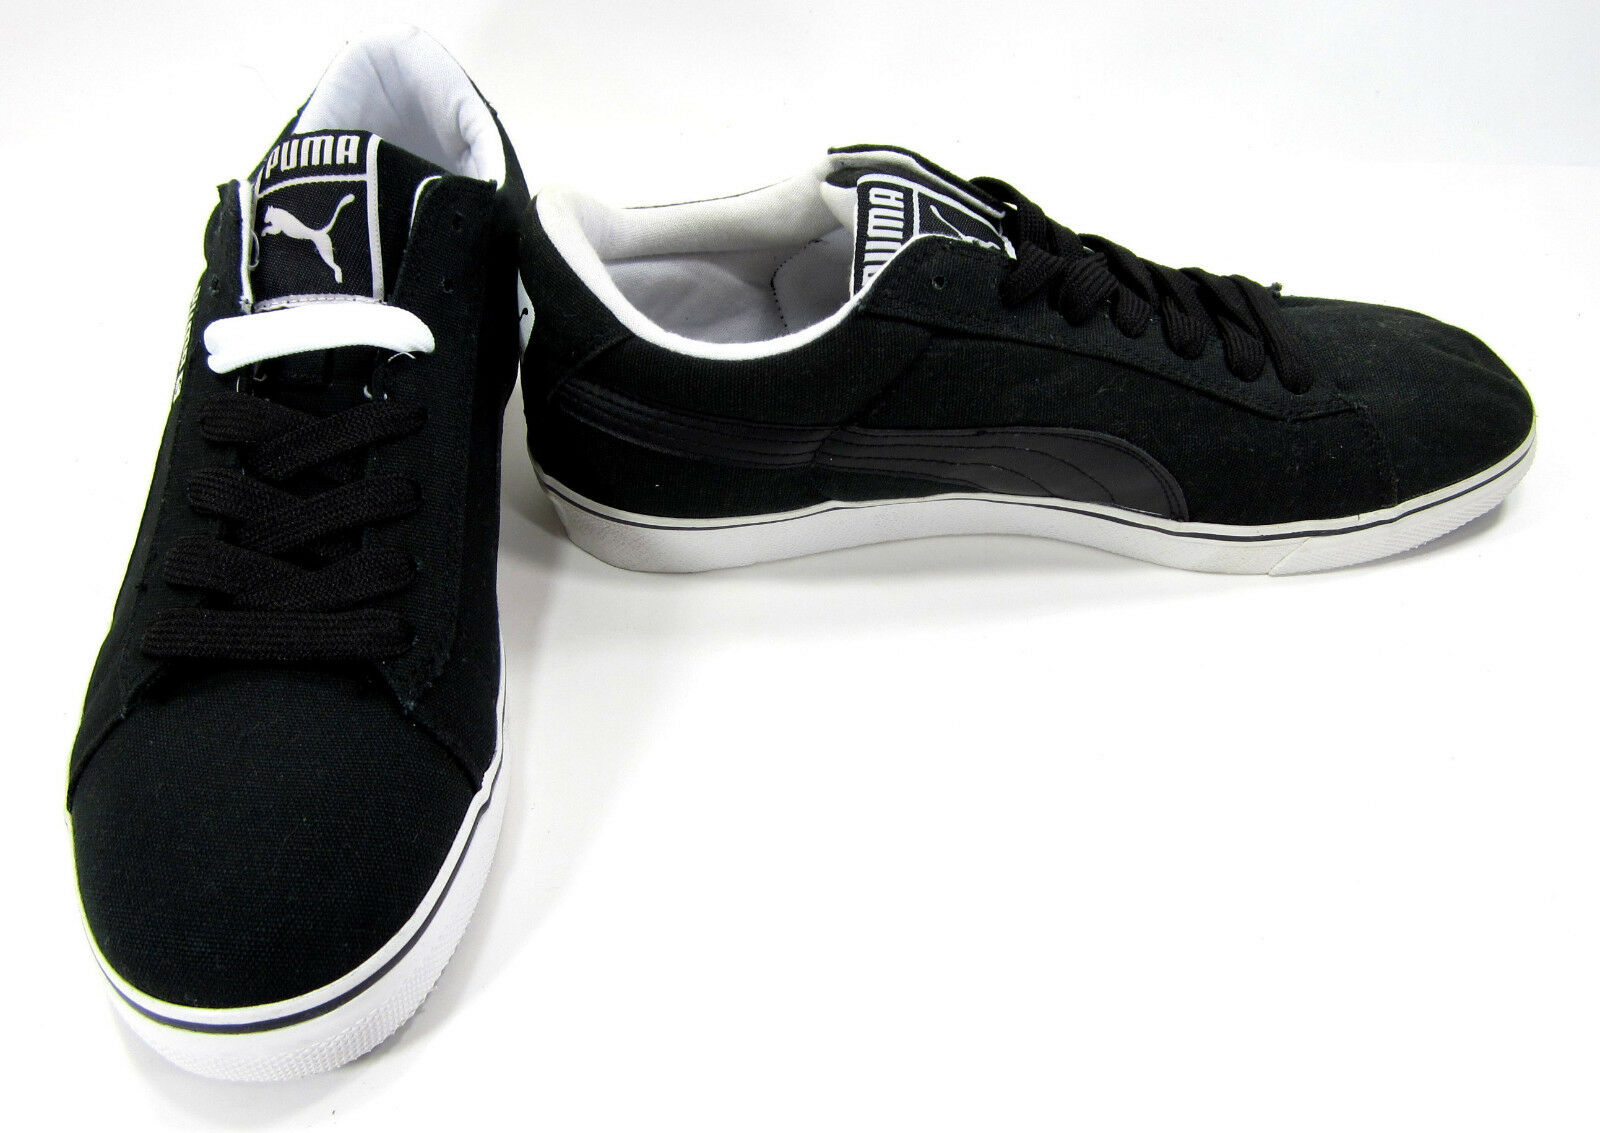 Puma Shoes S Vulcan Canvas Black/White Sneakers Comfortable